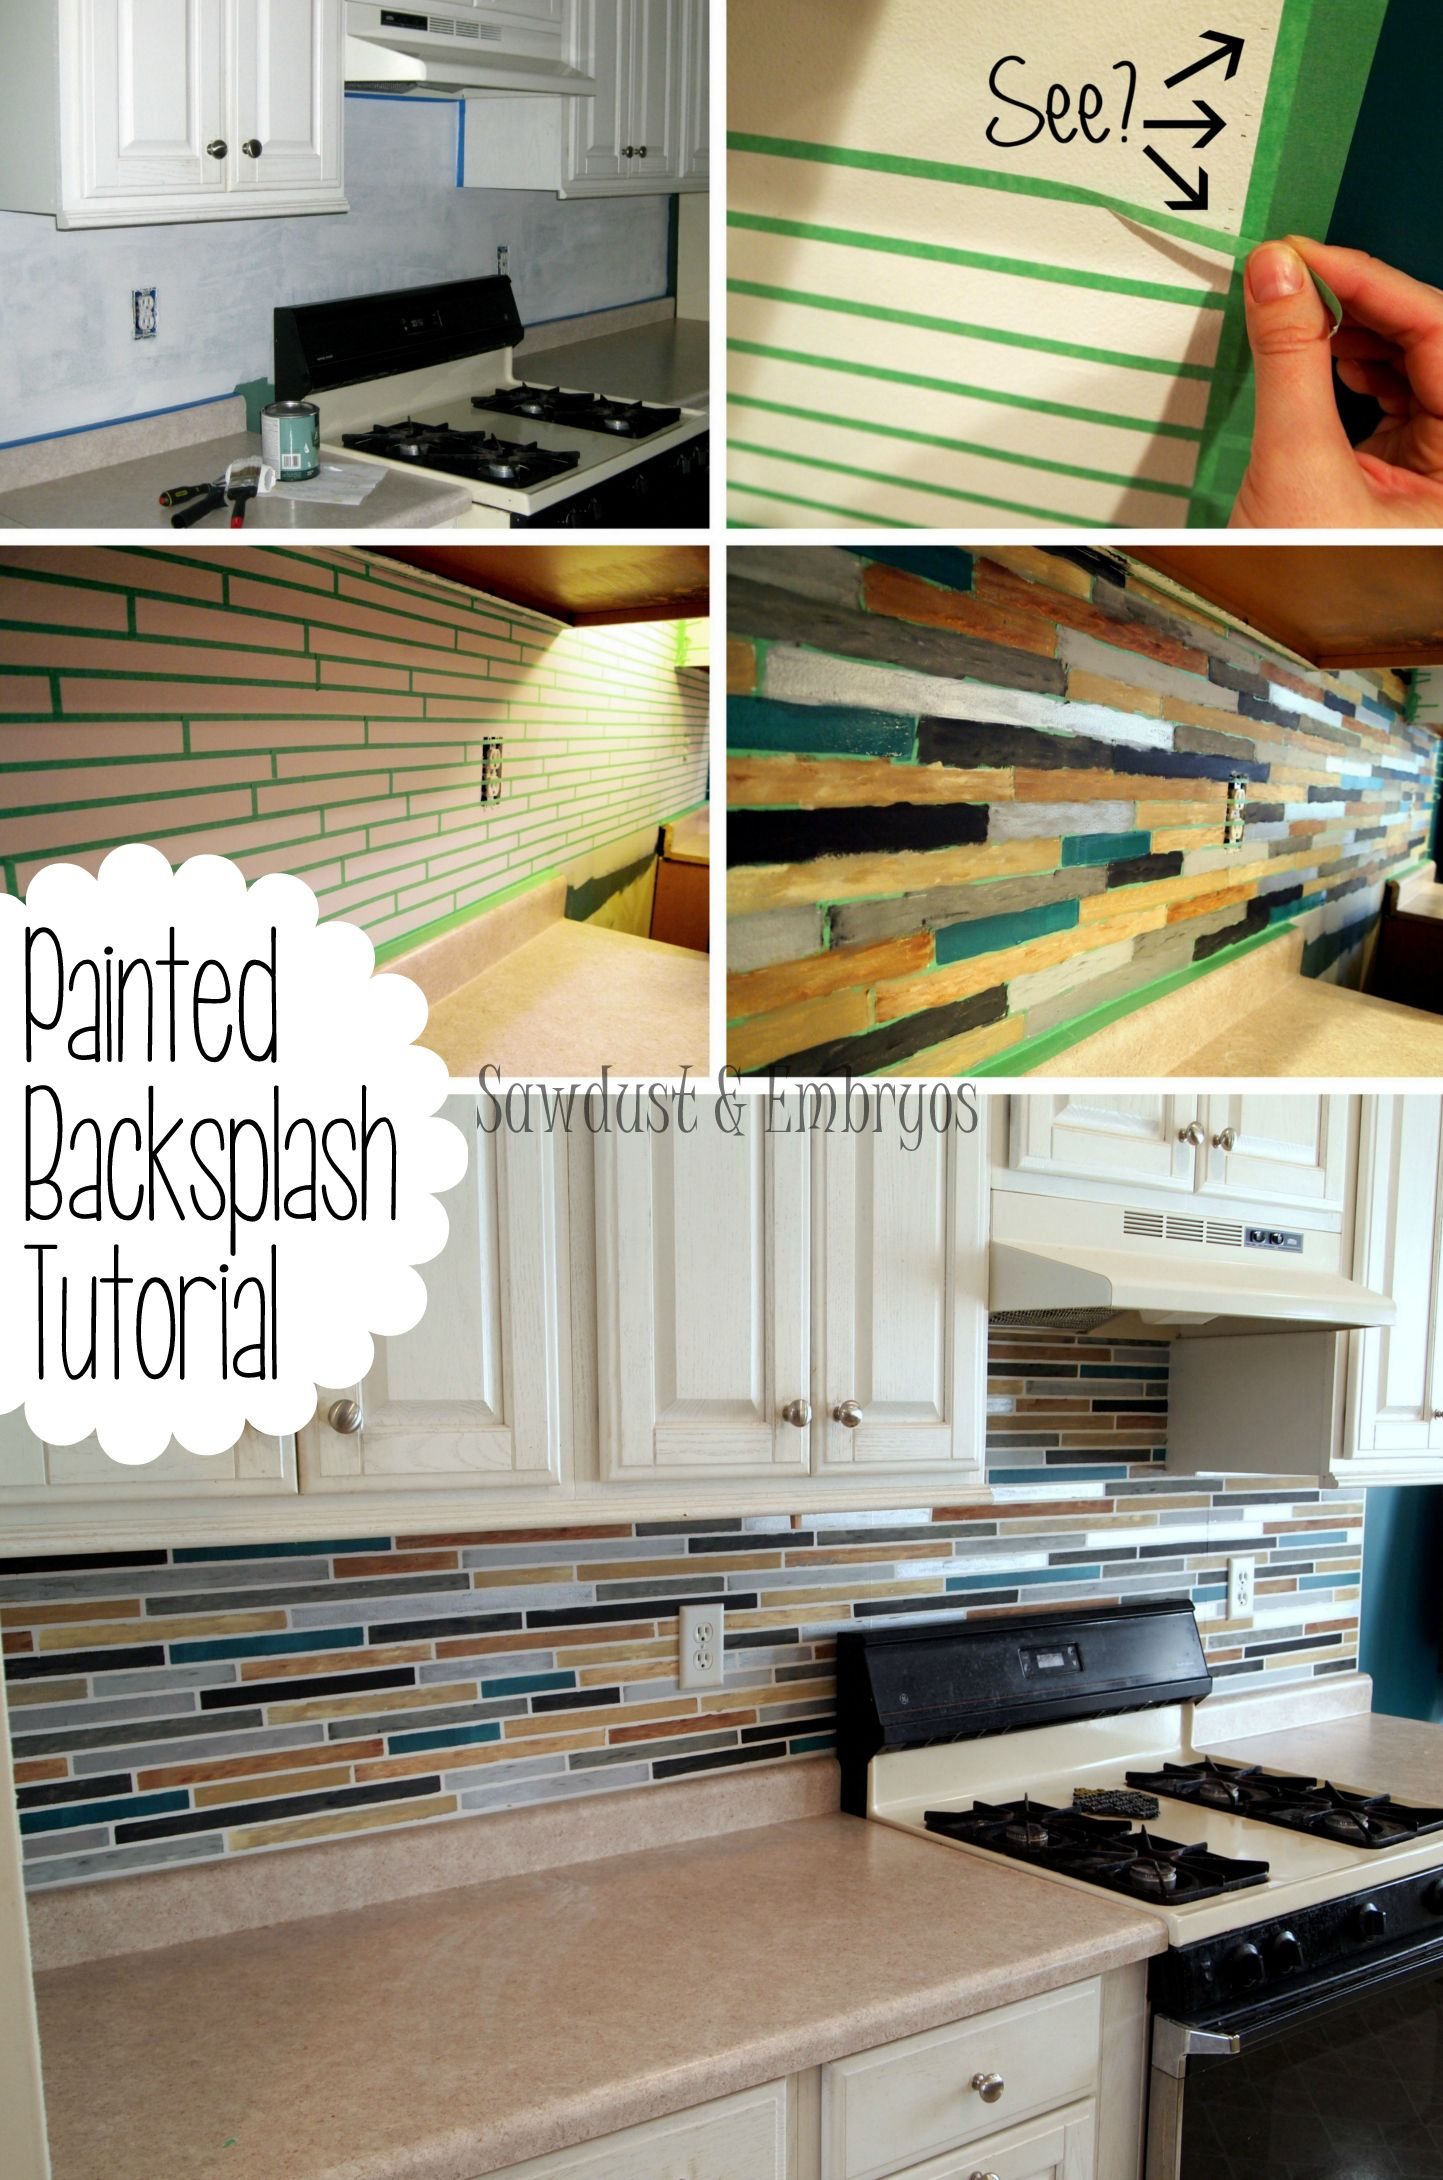 How To Paint A Backsplash To Look Like Tile Diy Home Improvement